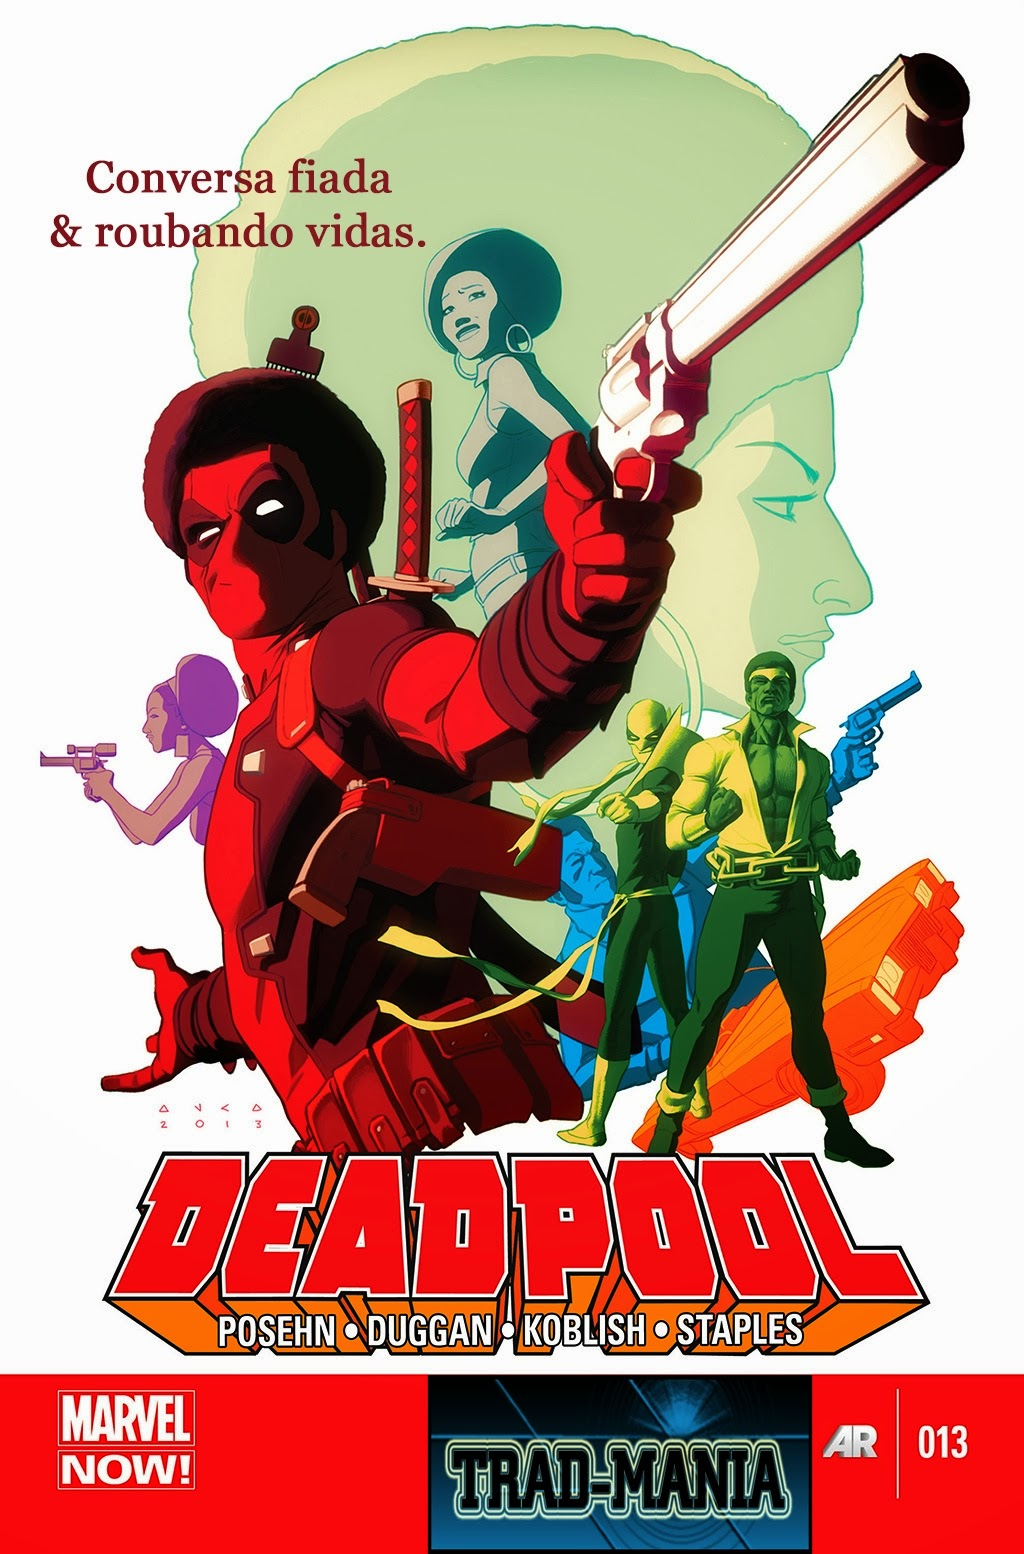 Nova Marvel! Deadpool v5 #13